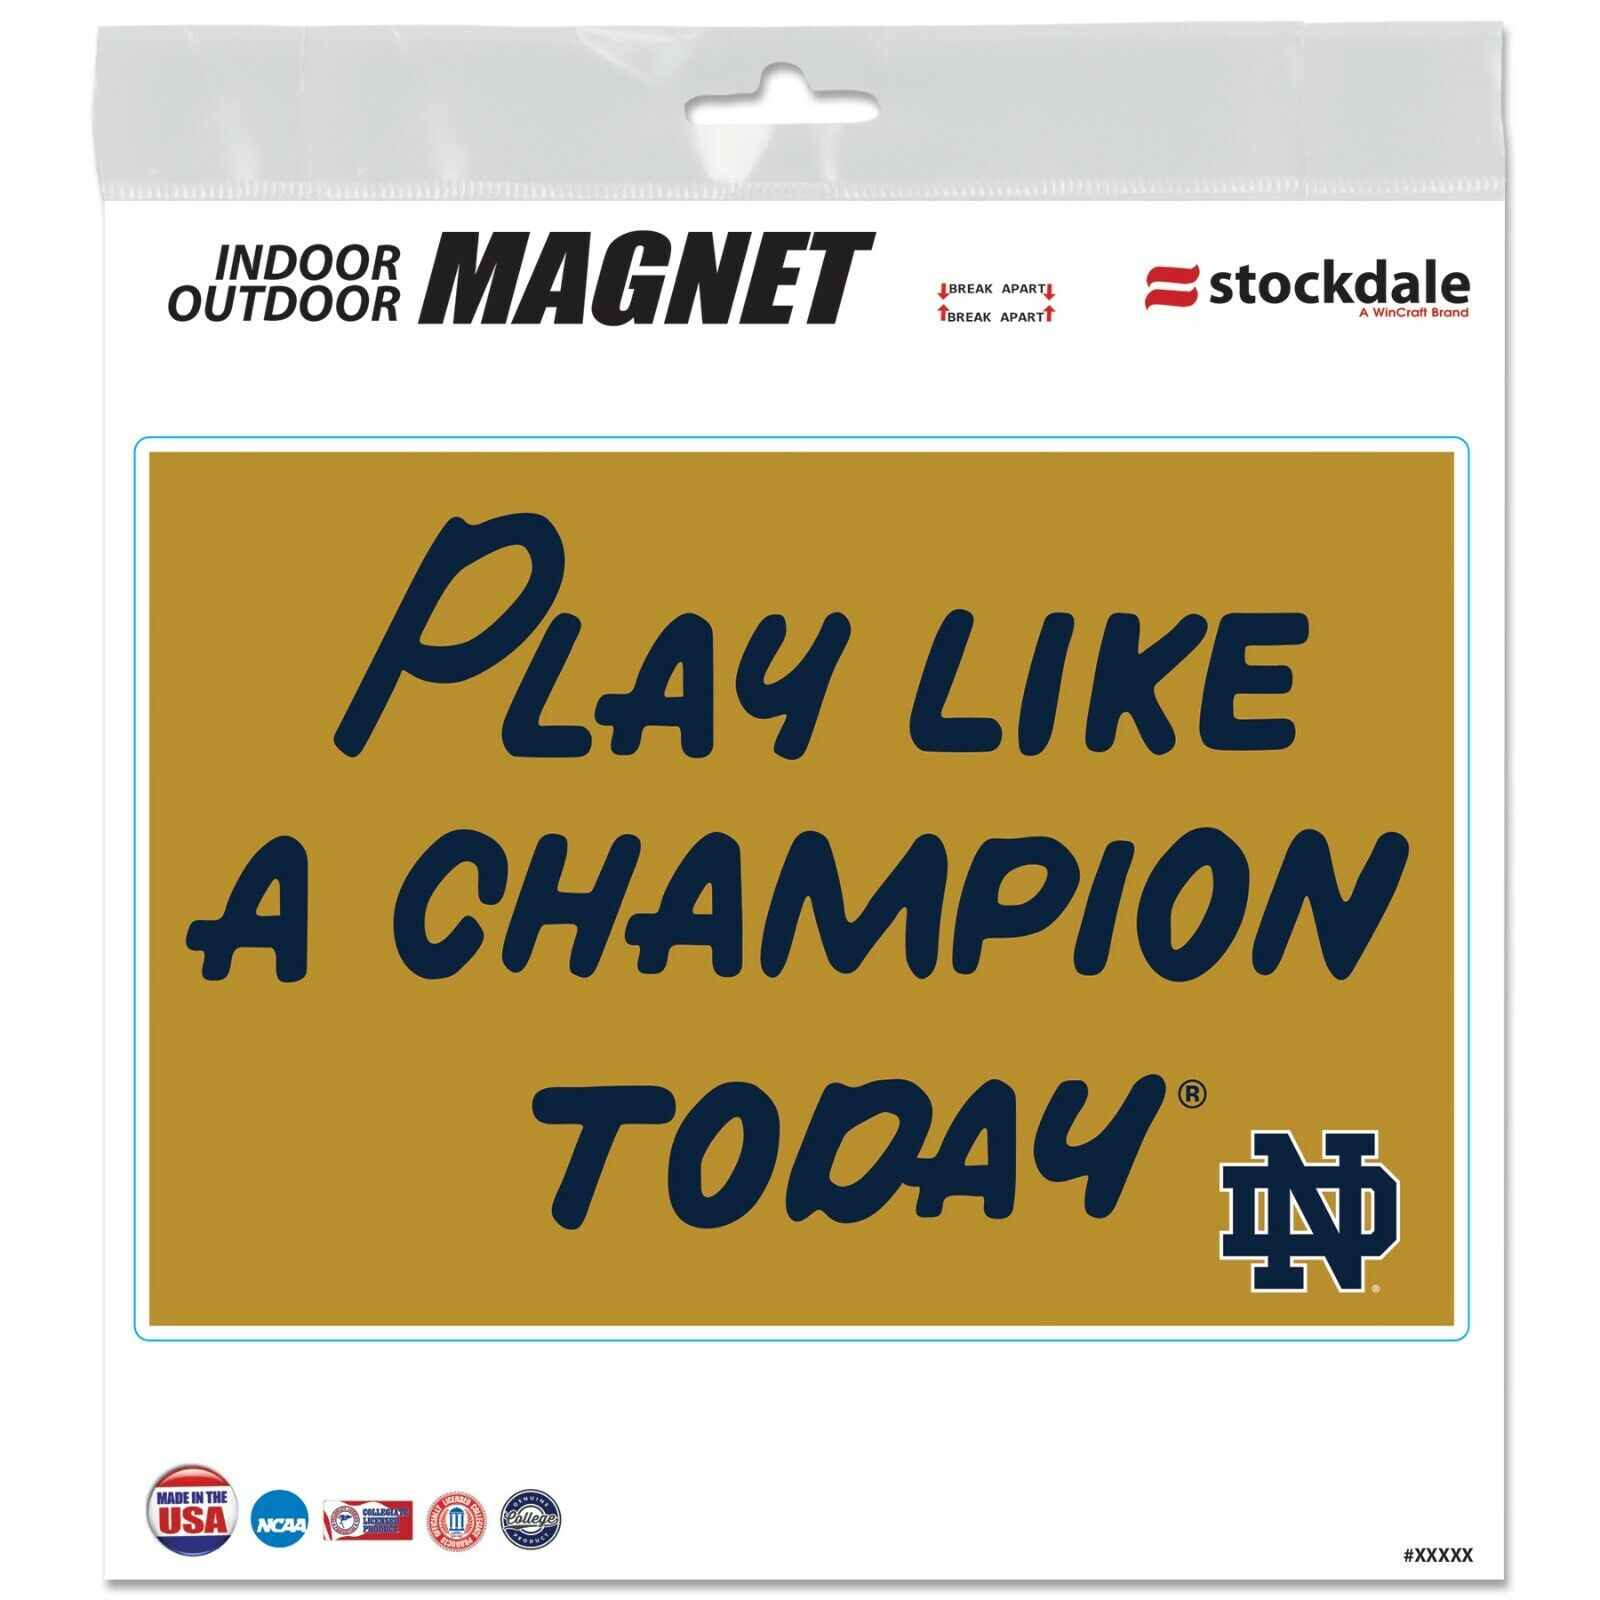 NOTRE DAME FIGHTING IRISH PLAY LIKE A CHAMPION TODAY LARGE INDOOR OUTDOOR MAGNET